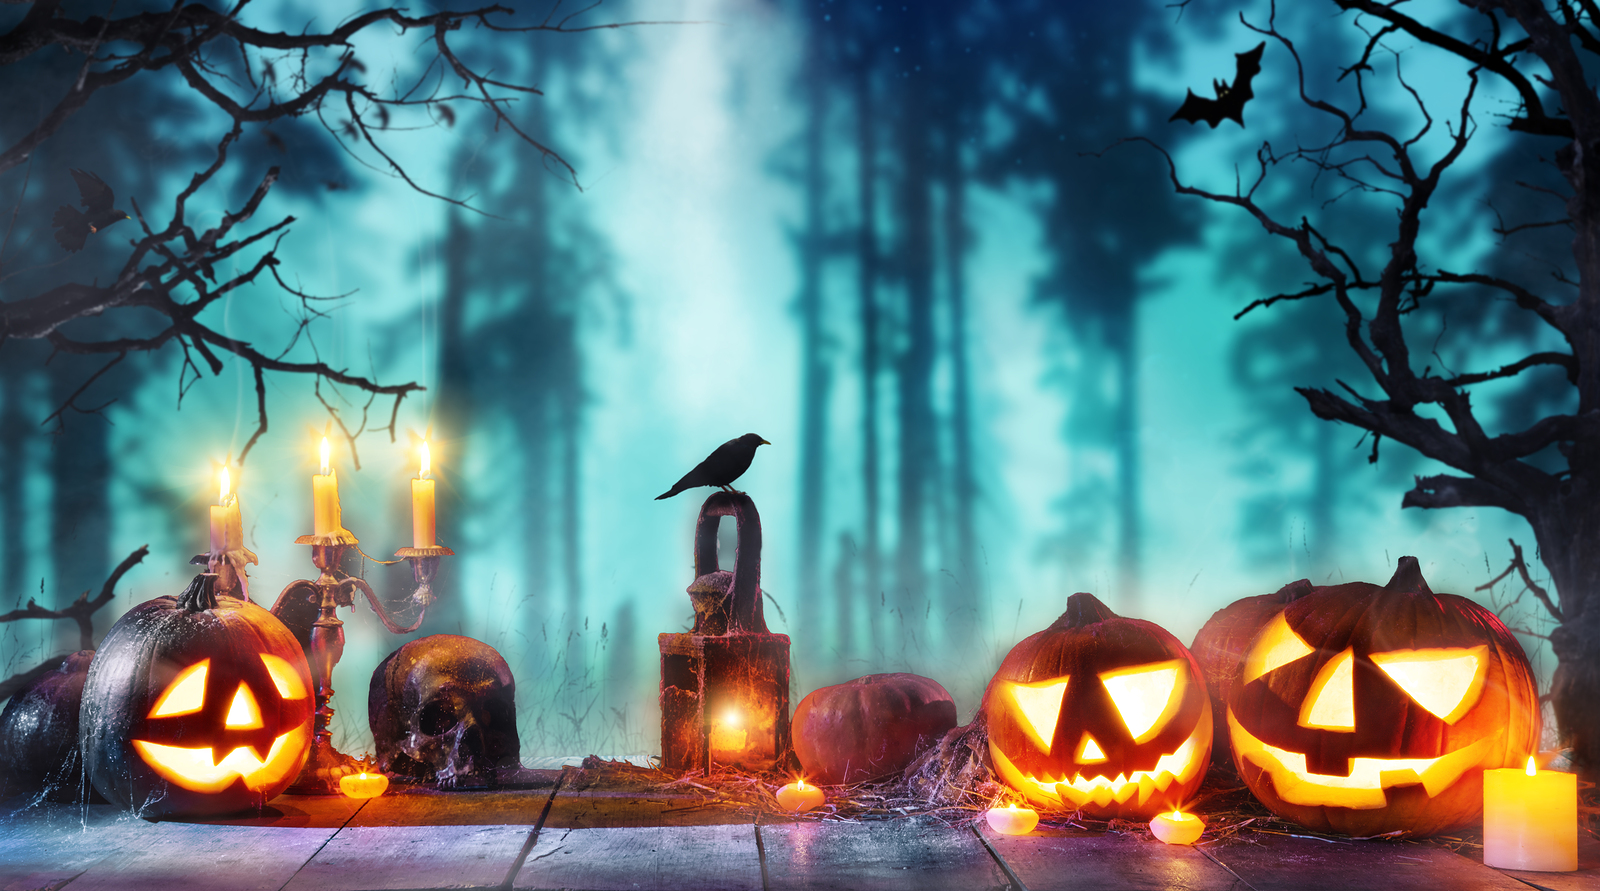 Time To Plan For A Spooky Halloween Getaway?